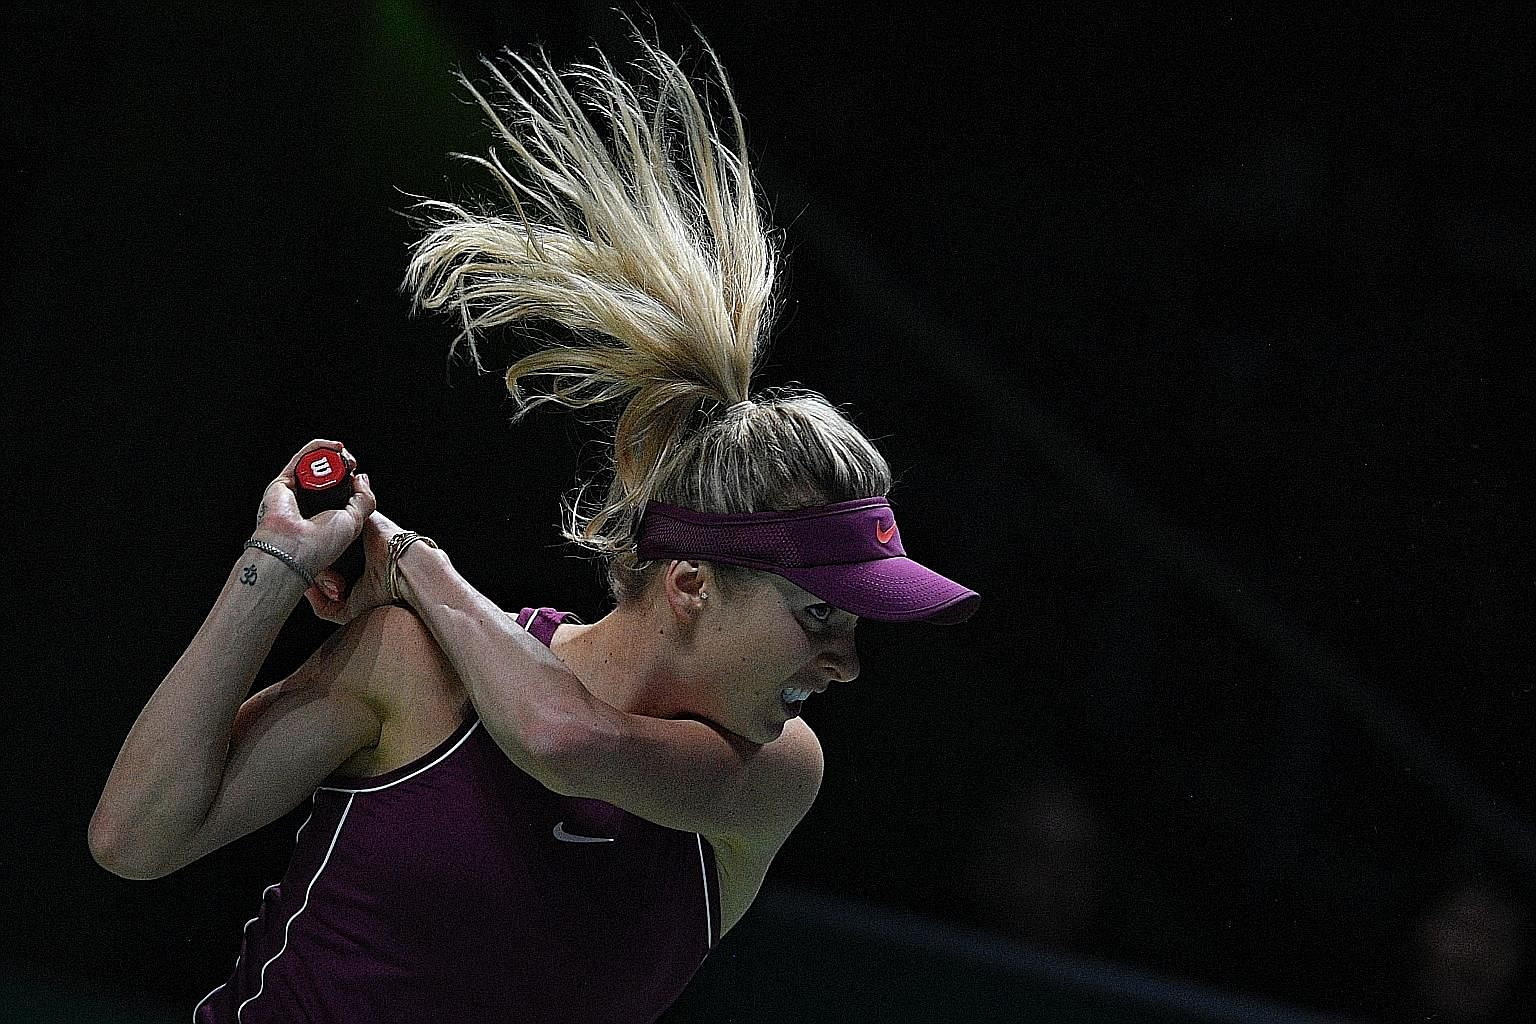 Elina Svitolina's mental toughness is on display in her expression as she hits a return to Sloane Stephens during the final of the WTA Finals yesterday. The Ukrainian dispatched her American opponent in three sets.